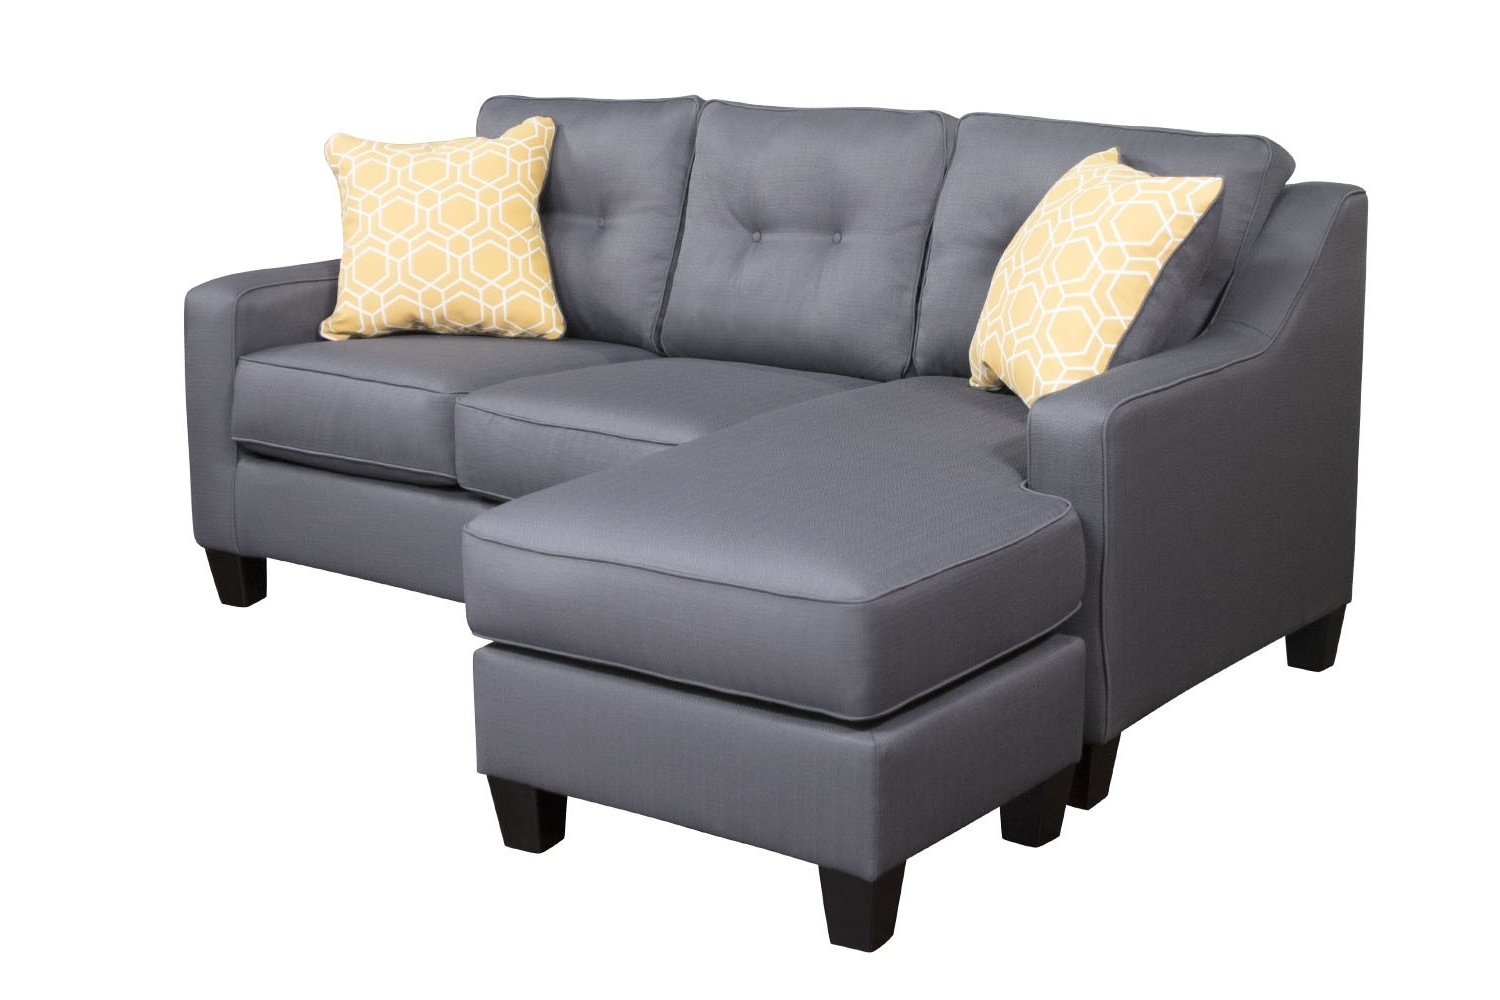 Mor Furniture For Less Inside 2017 Gray Couches With Chaise (View 11 of 15)